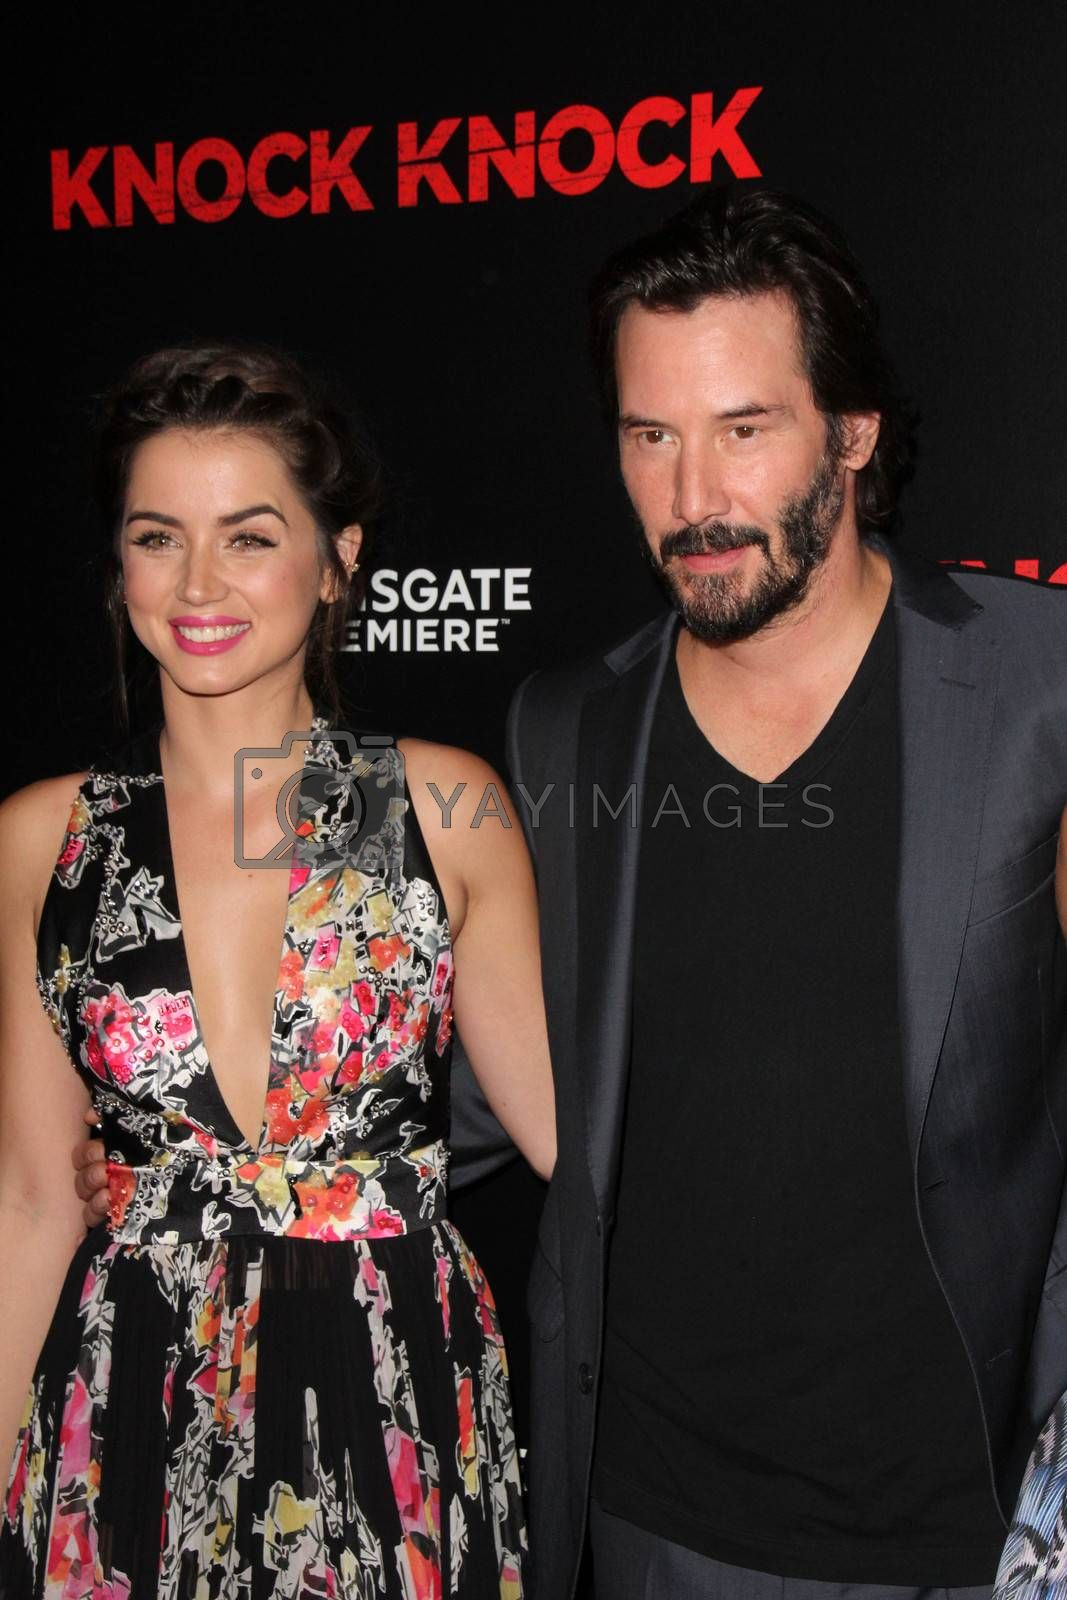 """Ana de Armas, Keanu Reeves at the """"Knock Knock"""" Los Angeles Premiere, TCL Chinese Theater, Hollywood, CA 10-08-15/ImageCollect by ImageCollect"""